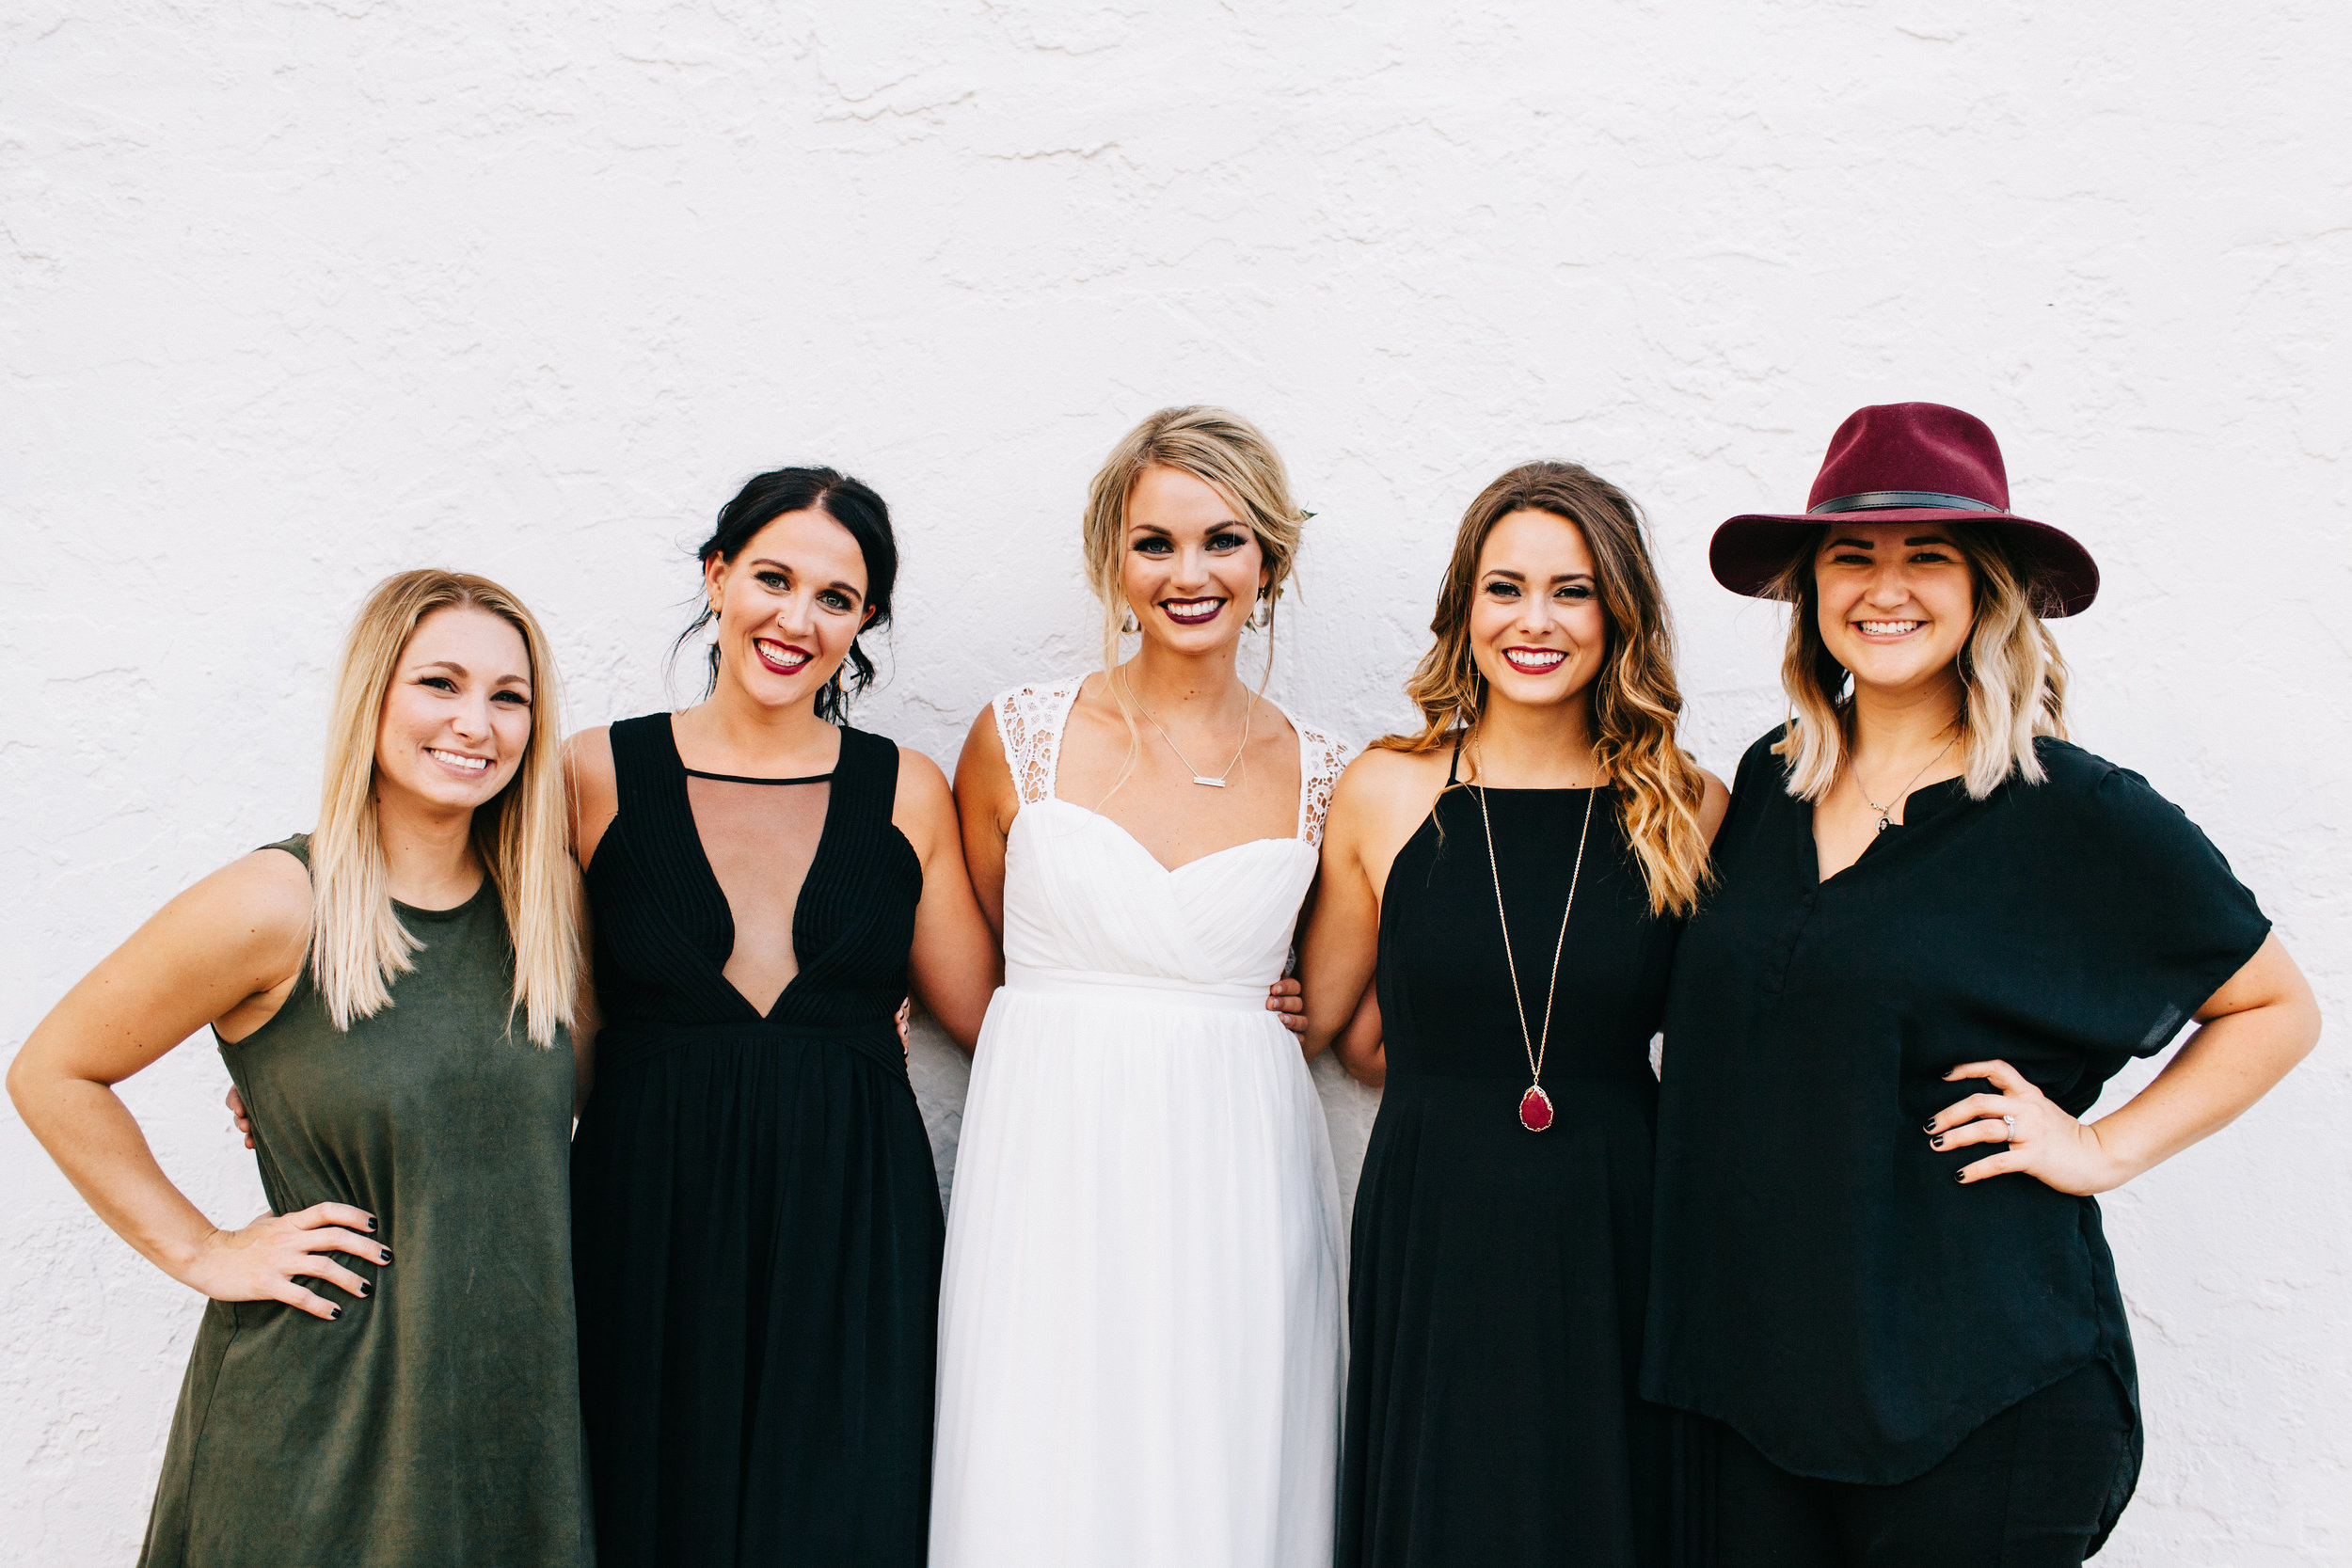 Jessica Ann (owner/stylist), Maegan Witham, Hayley Iago, Shelby Reust, Jenna Elyse (owner/stylist)